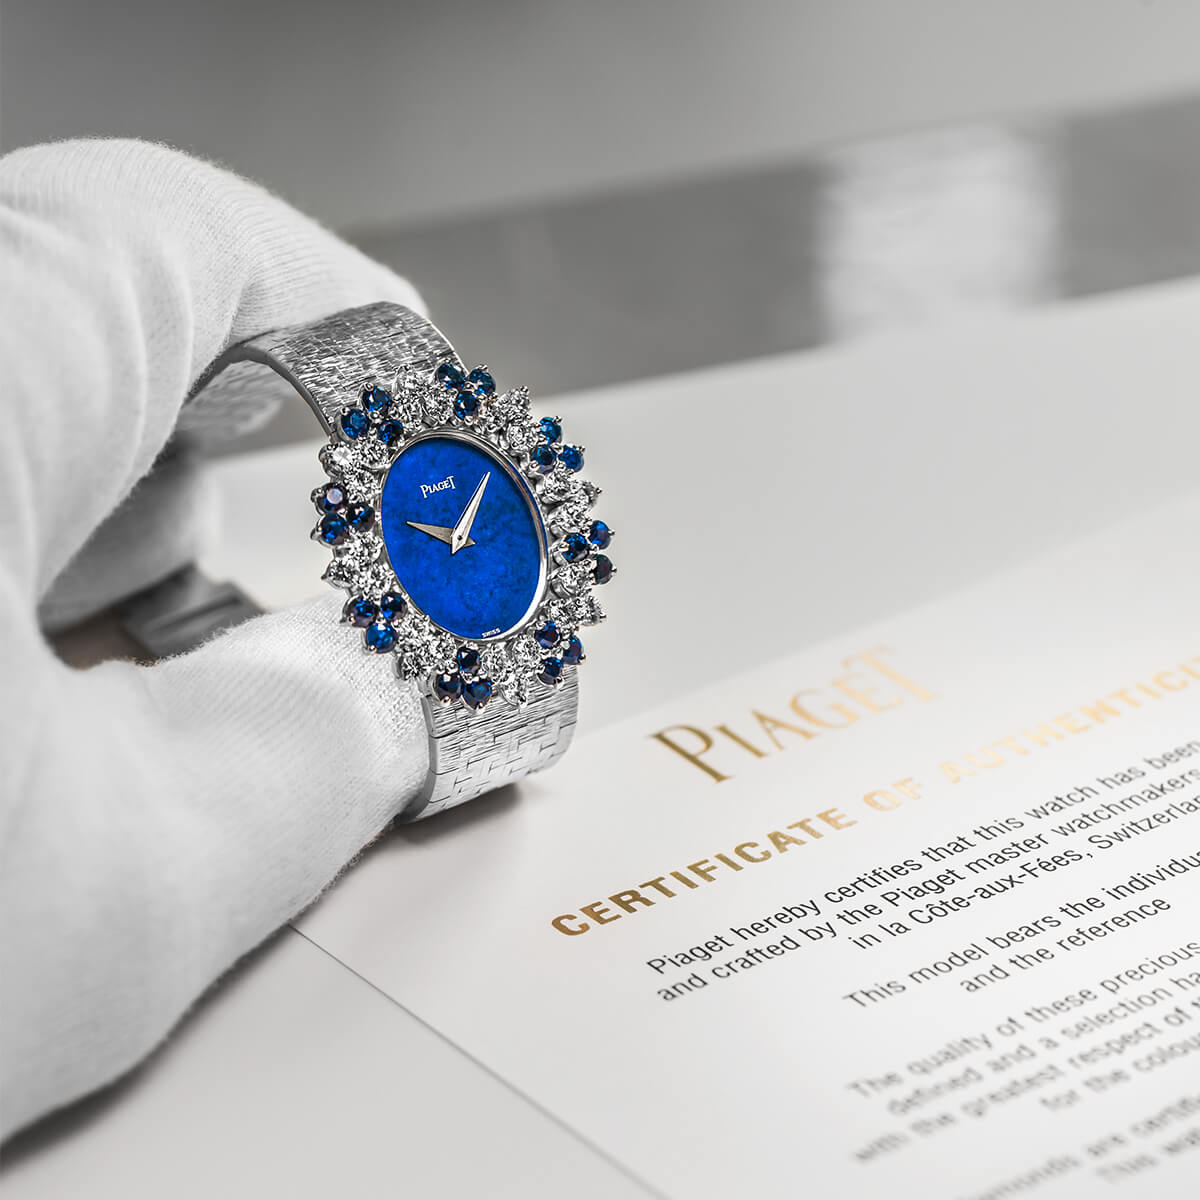 Piaget high-end watches certificates